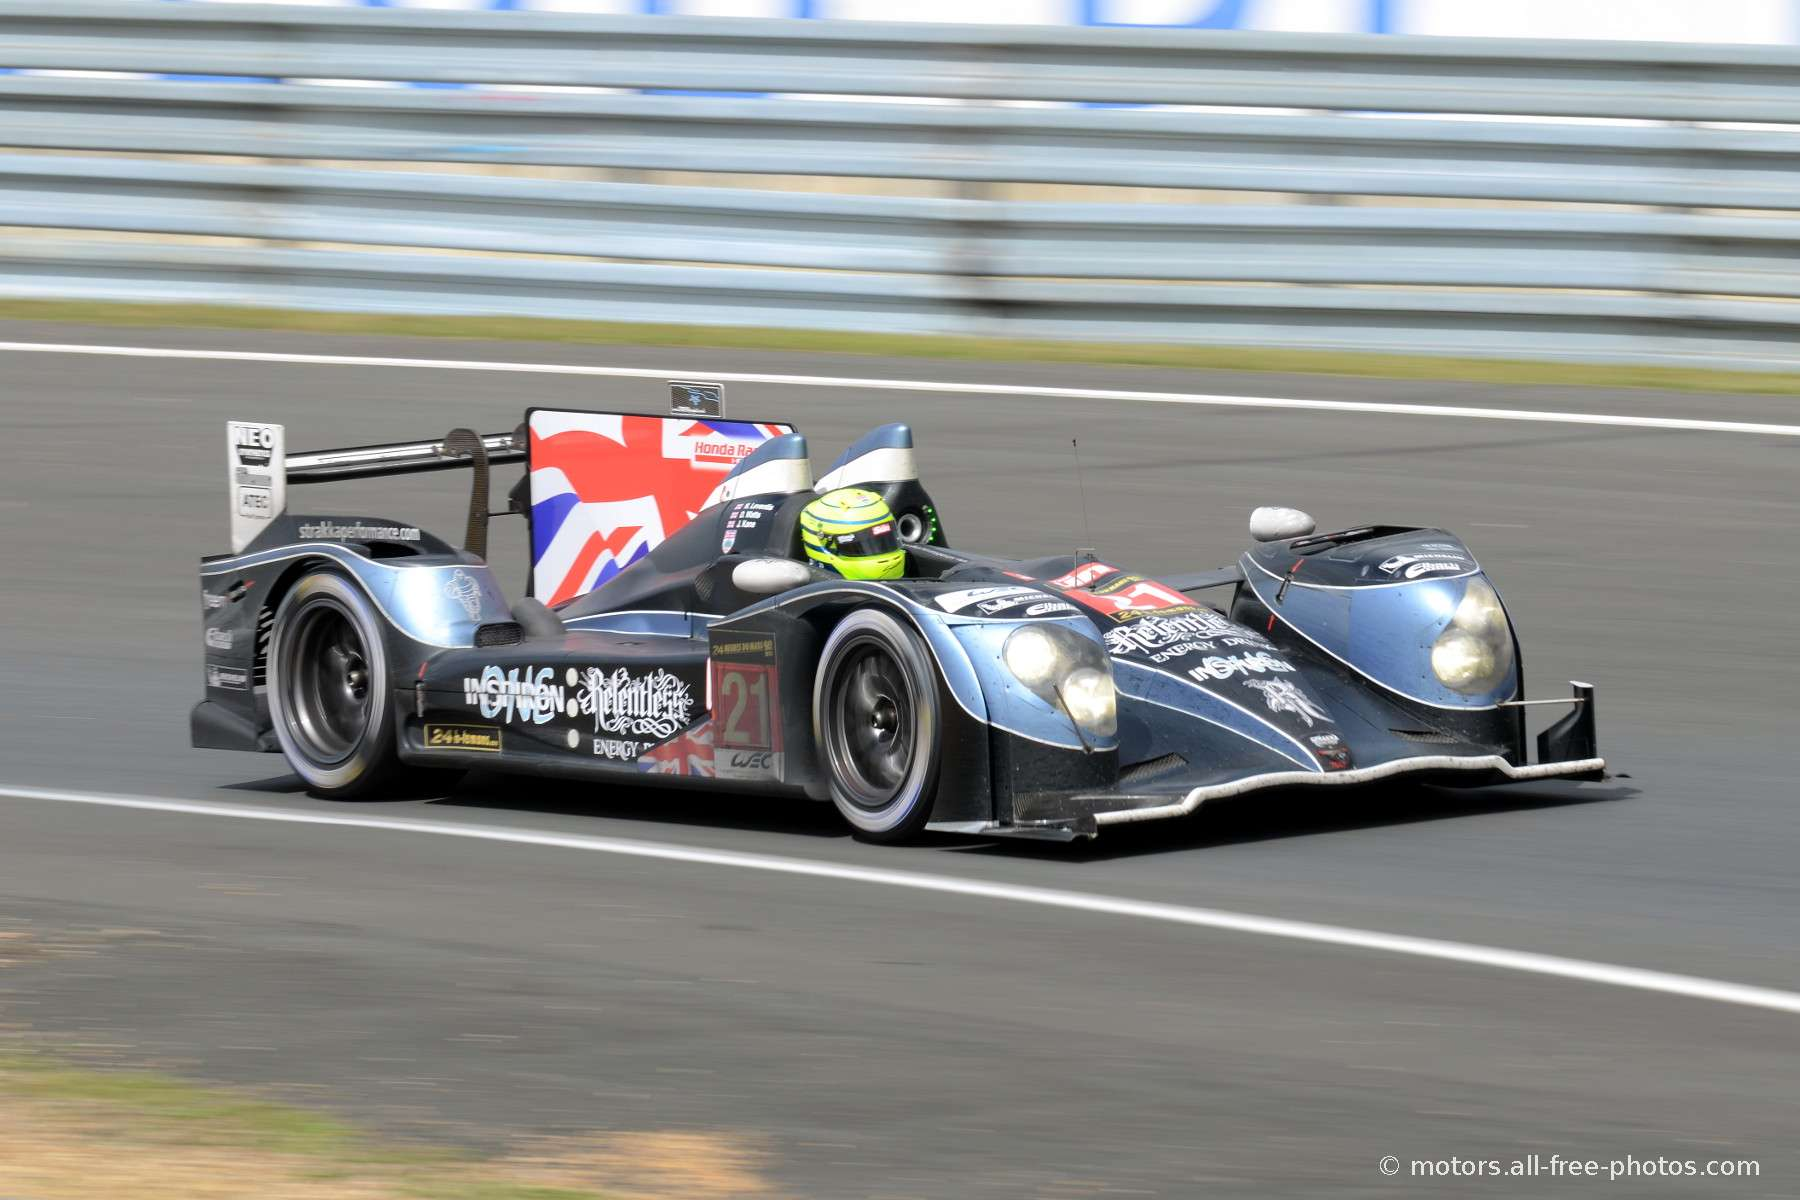 HPD ARX 03c-Honda - Team Strakka Racing